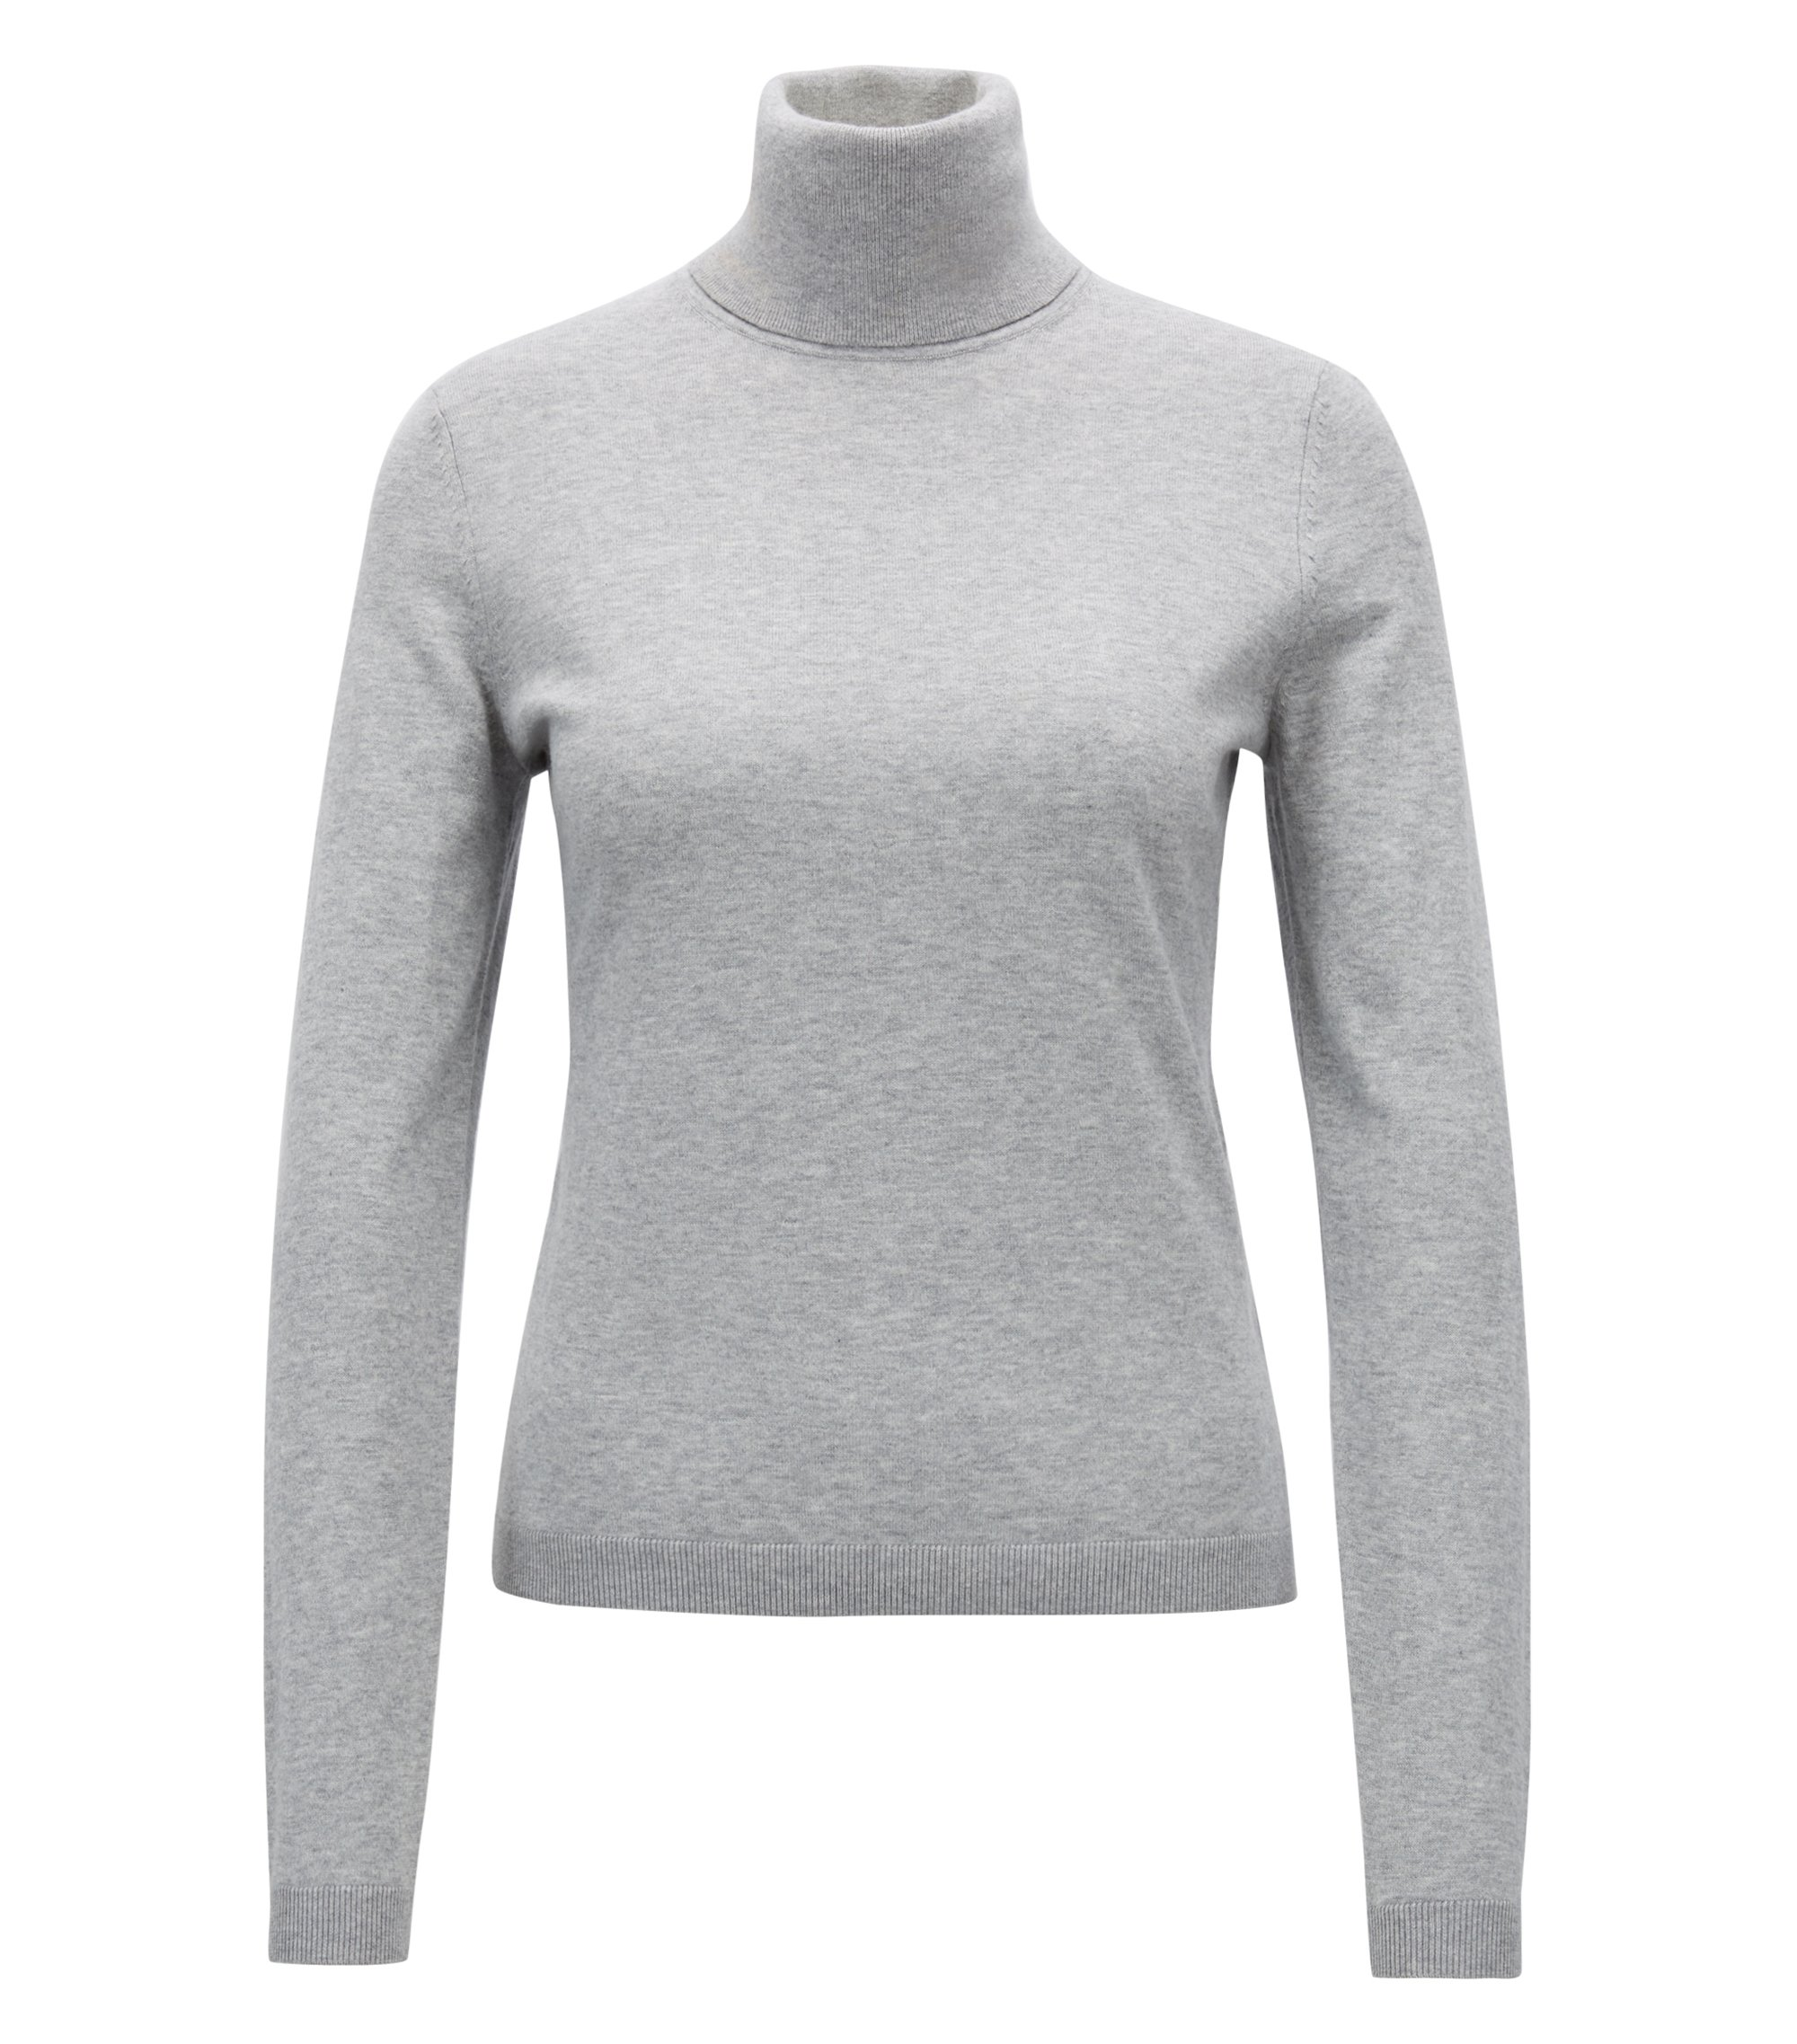 Roll-neck sweater in a cotton blend with cashmere, Silver